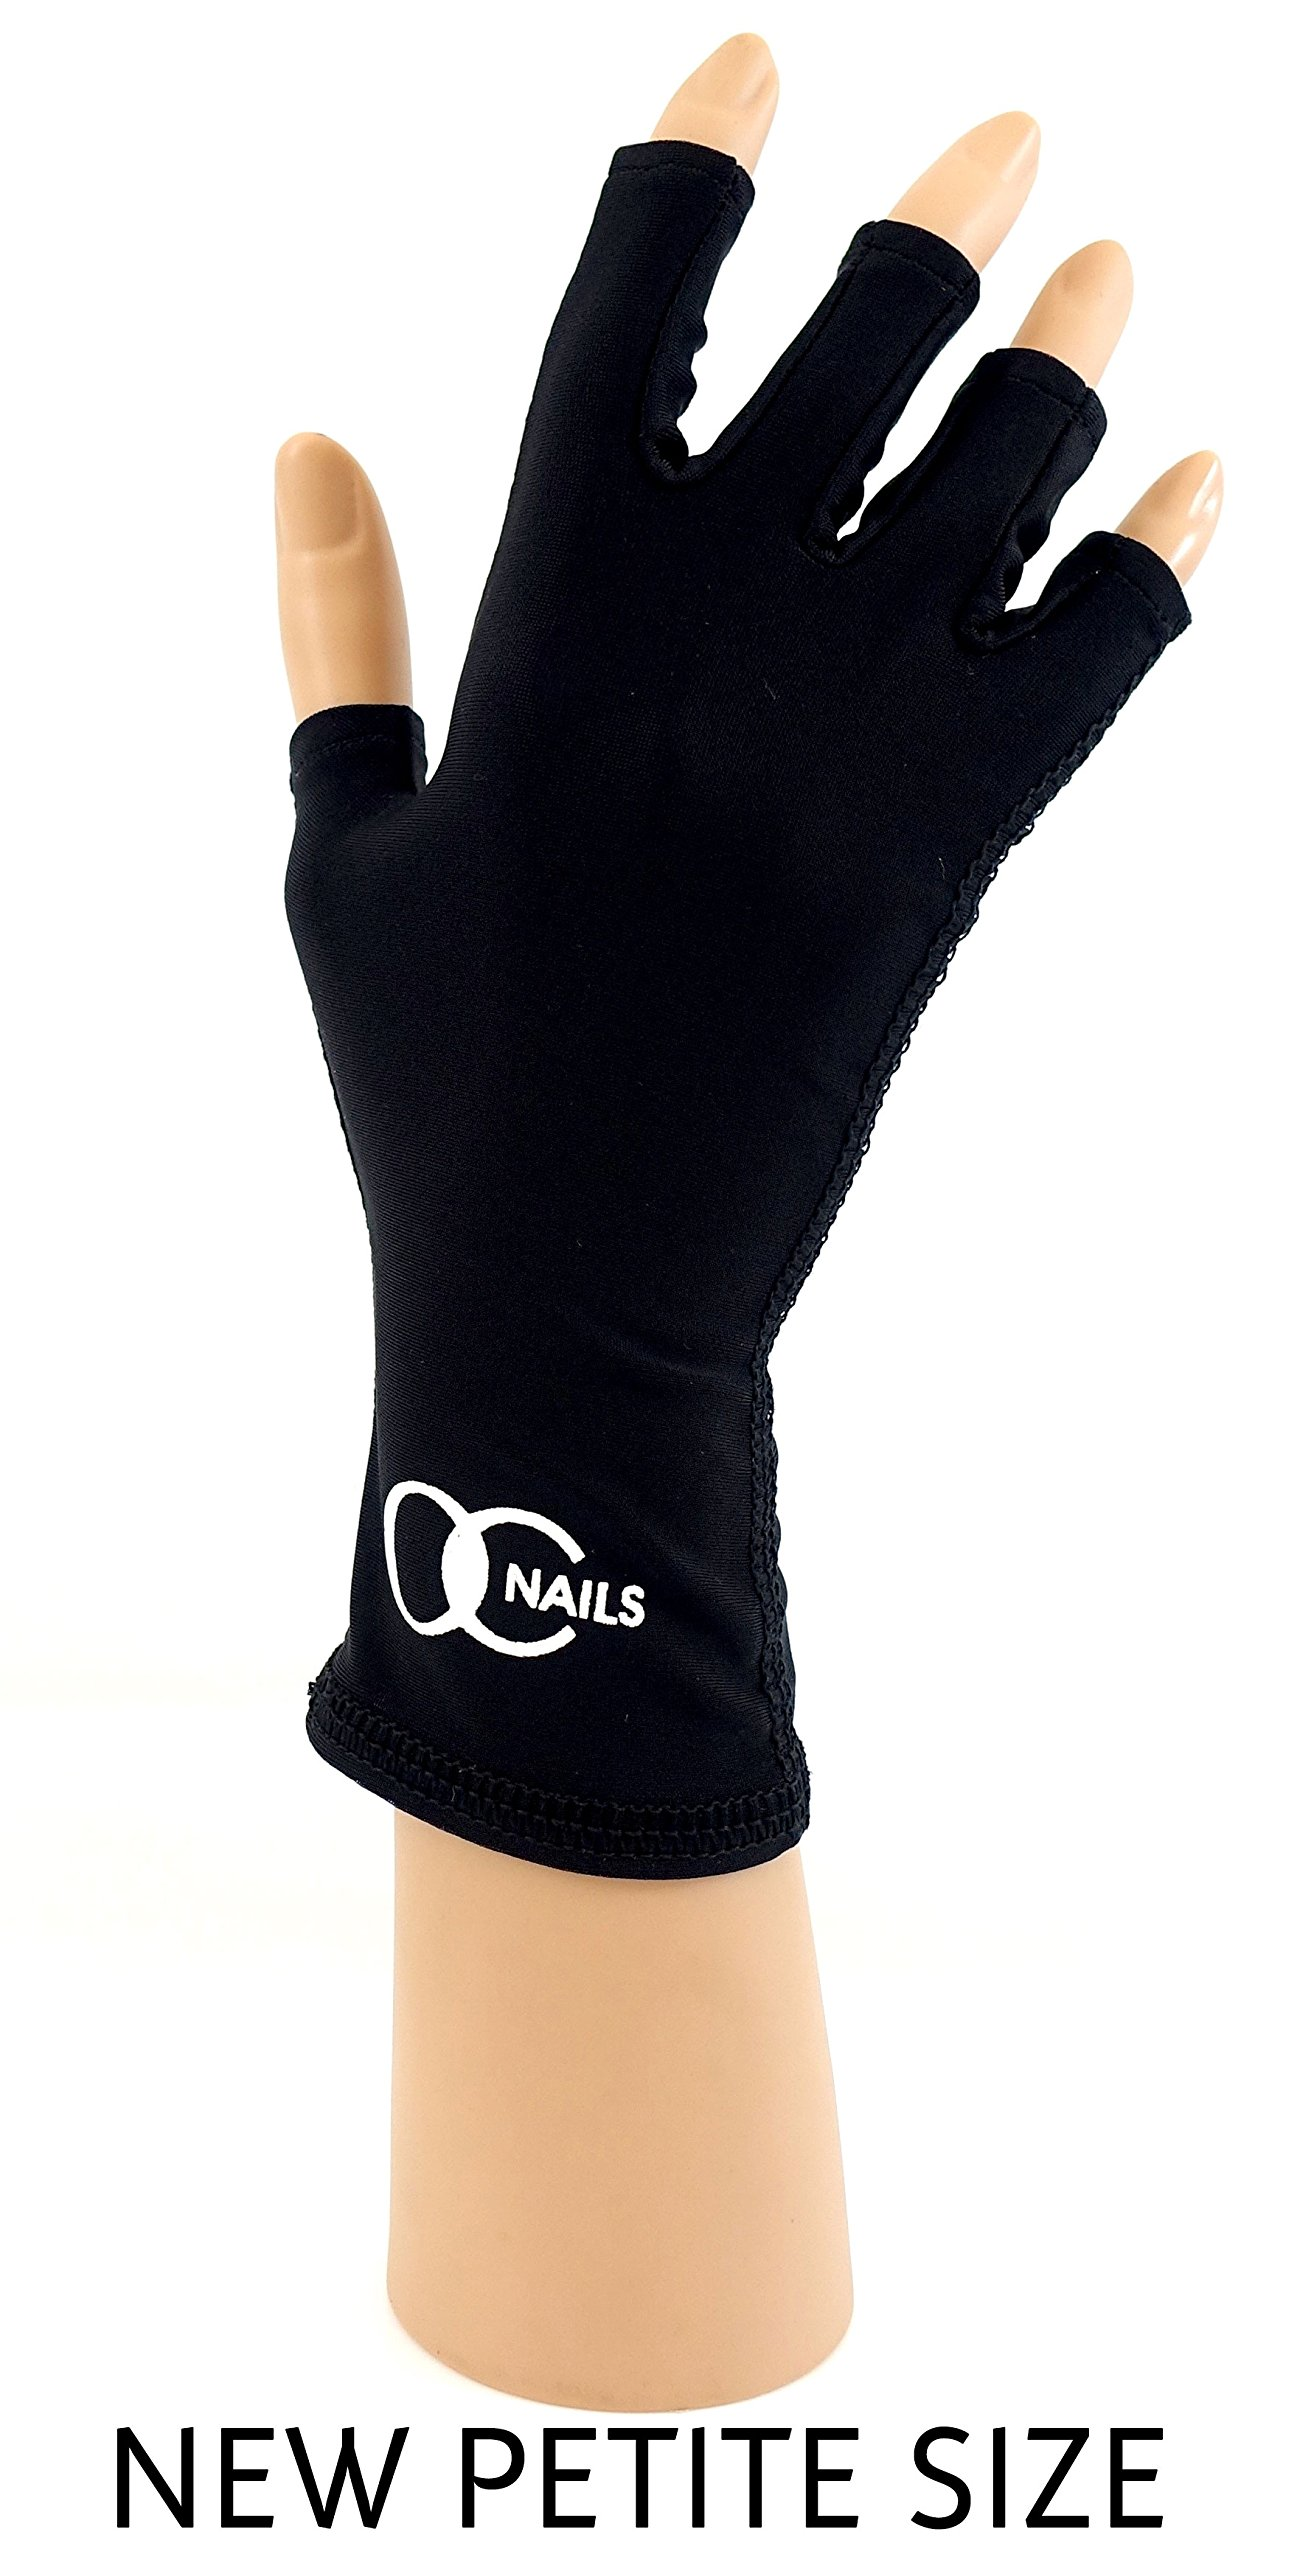 Amazon.com: OC Nails UV Shield Glove (AMETHYST ~ PETITE) Anti UV ...